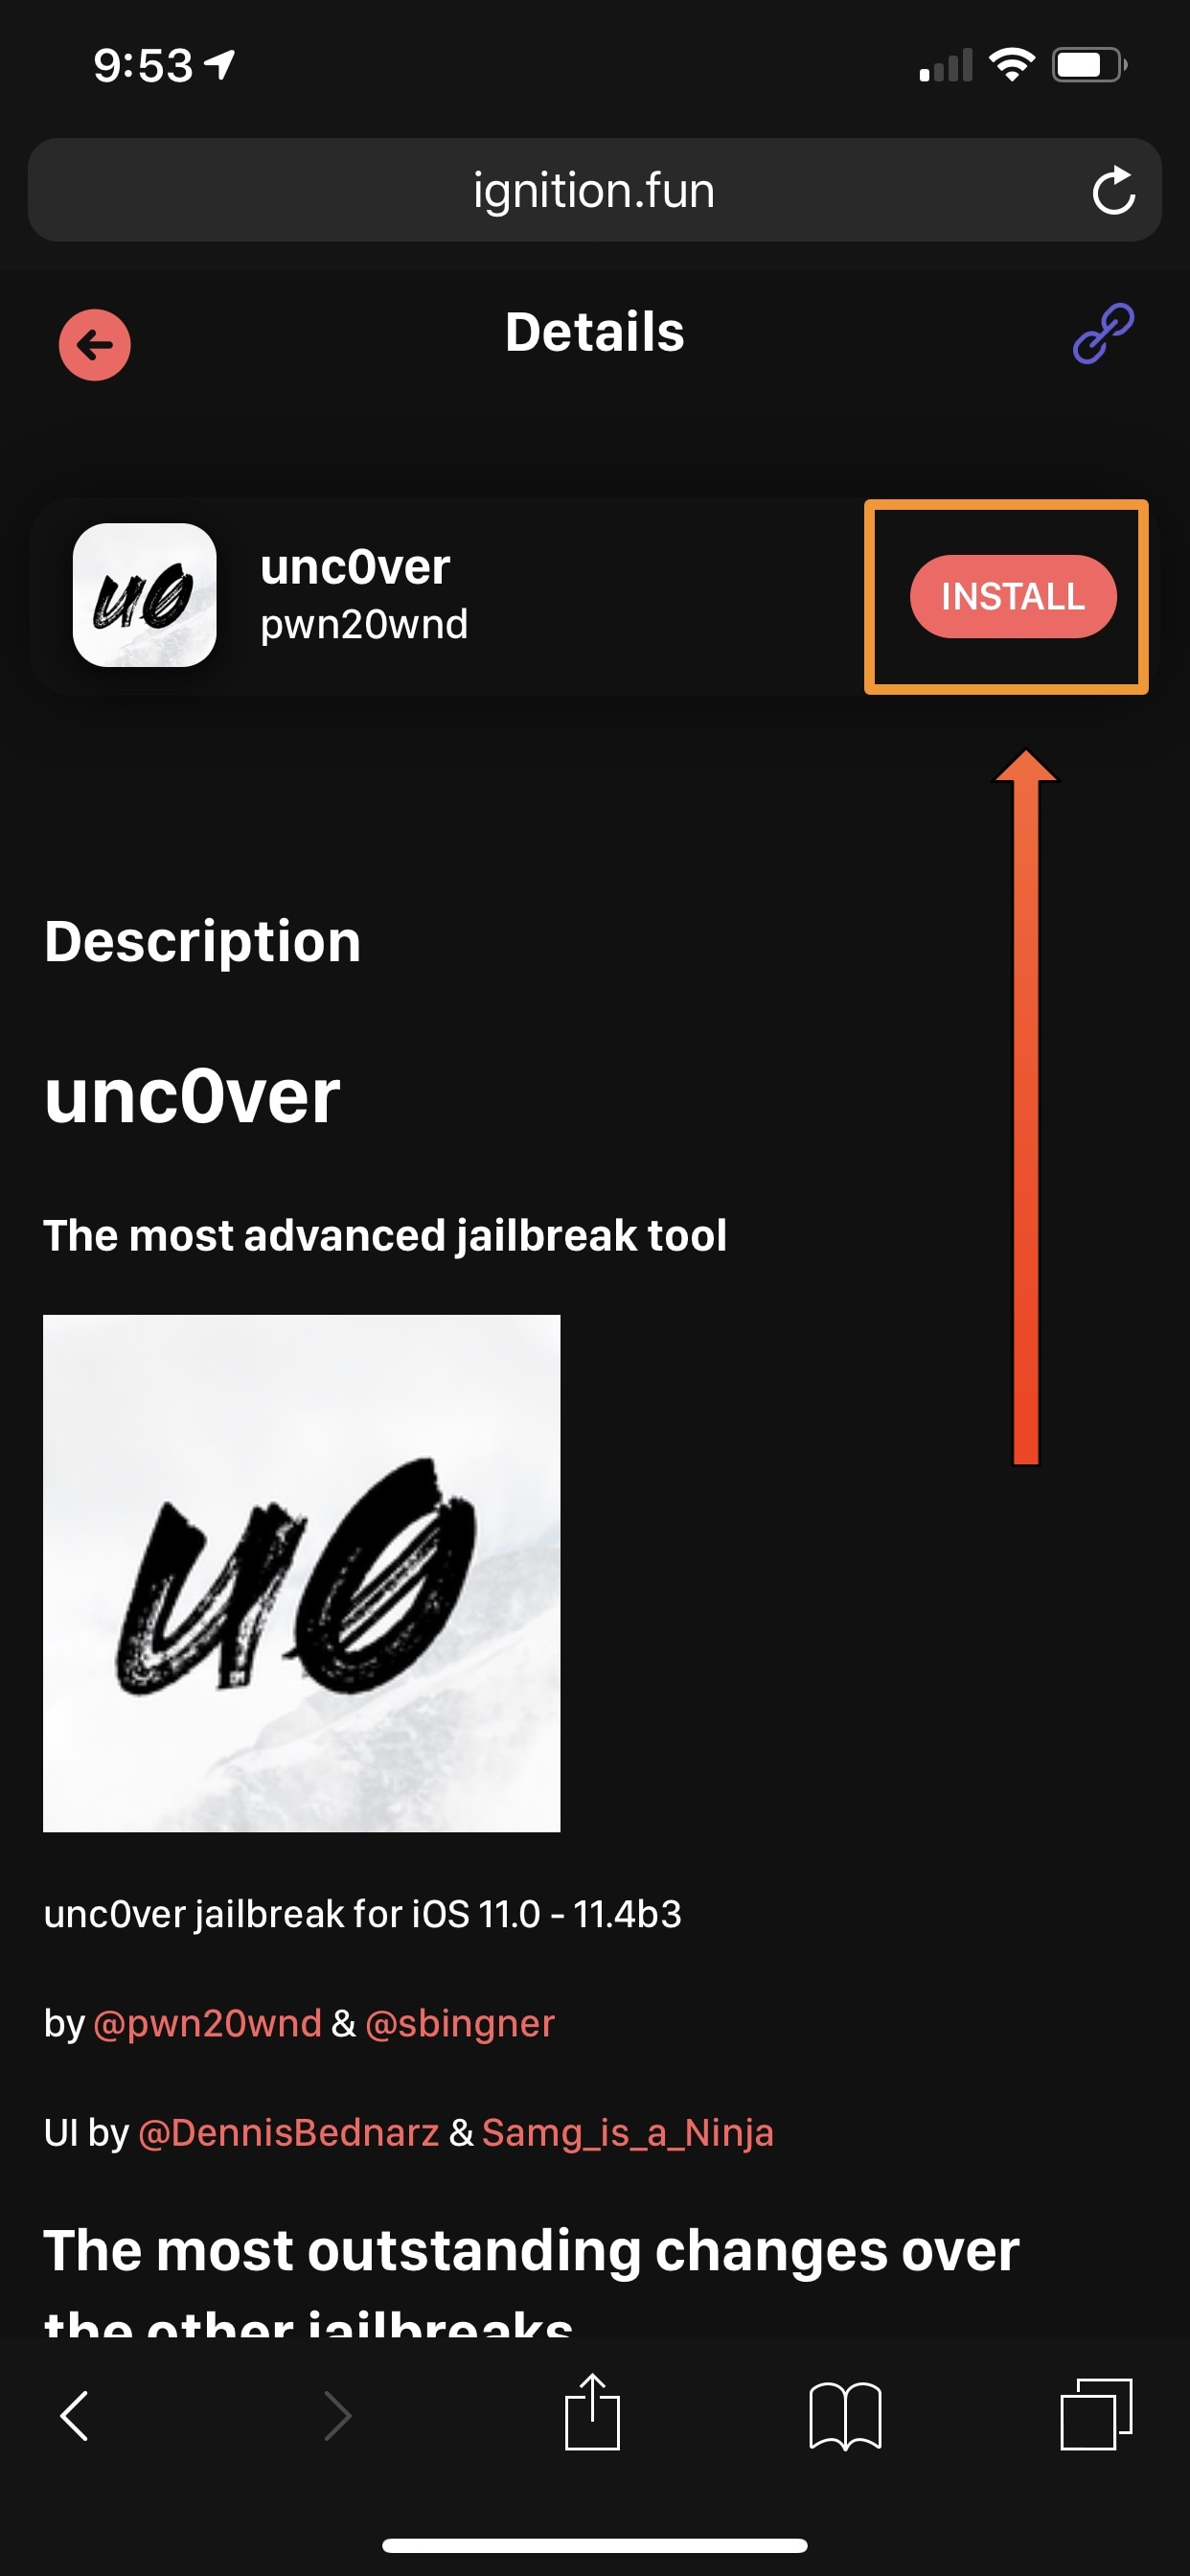 How to Install the Unc0ver Jailbreak Without a Computer?